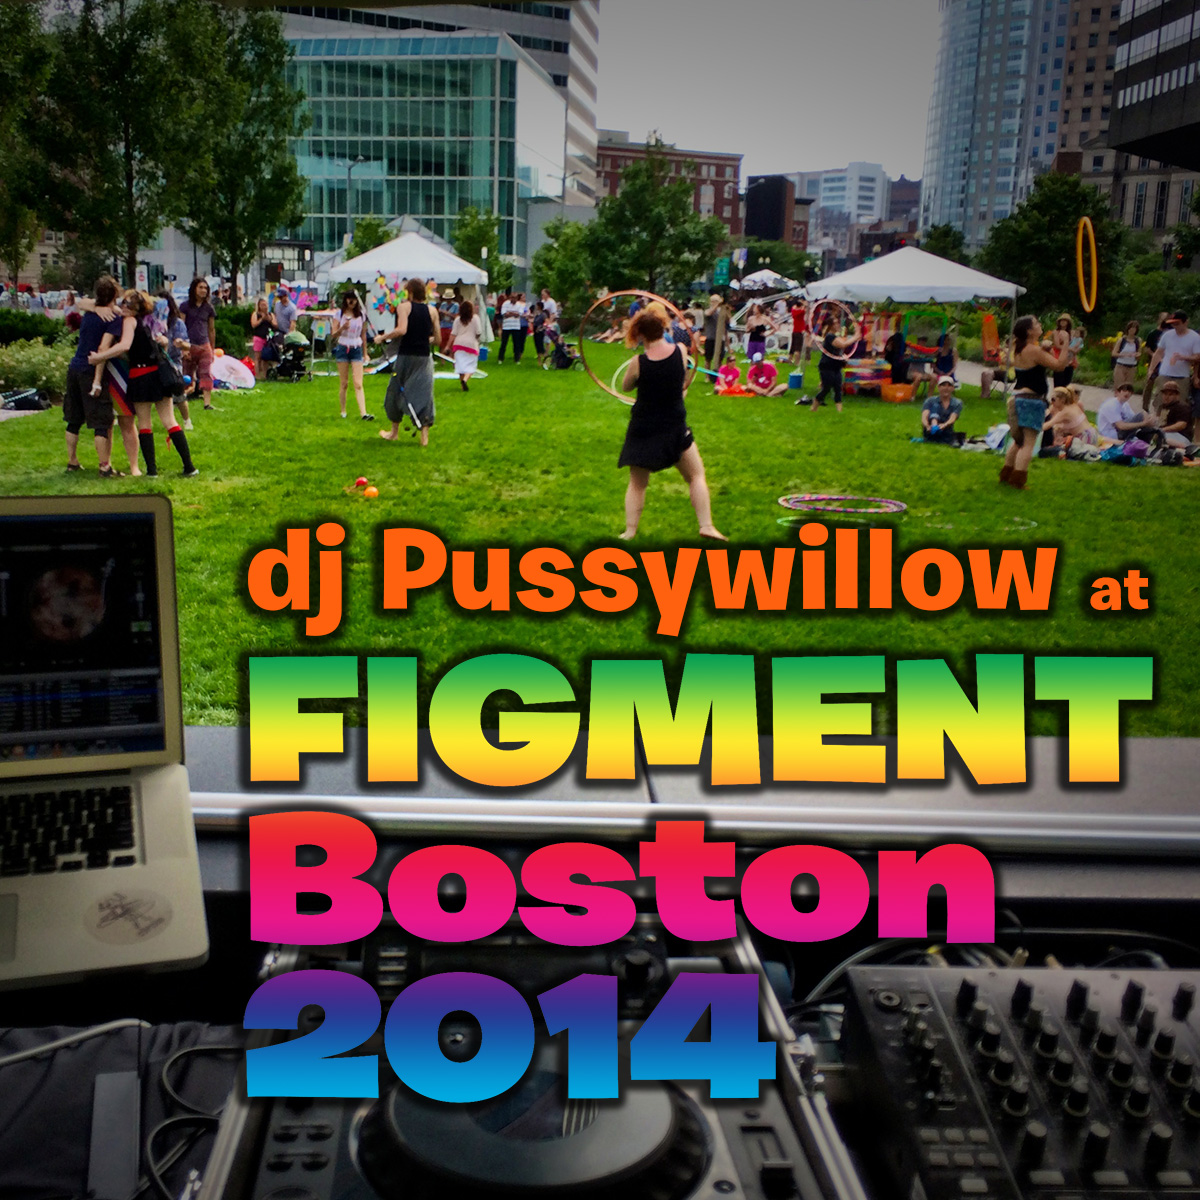 Pussywillow Live at Figment Boston - July 26, 2014